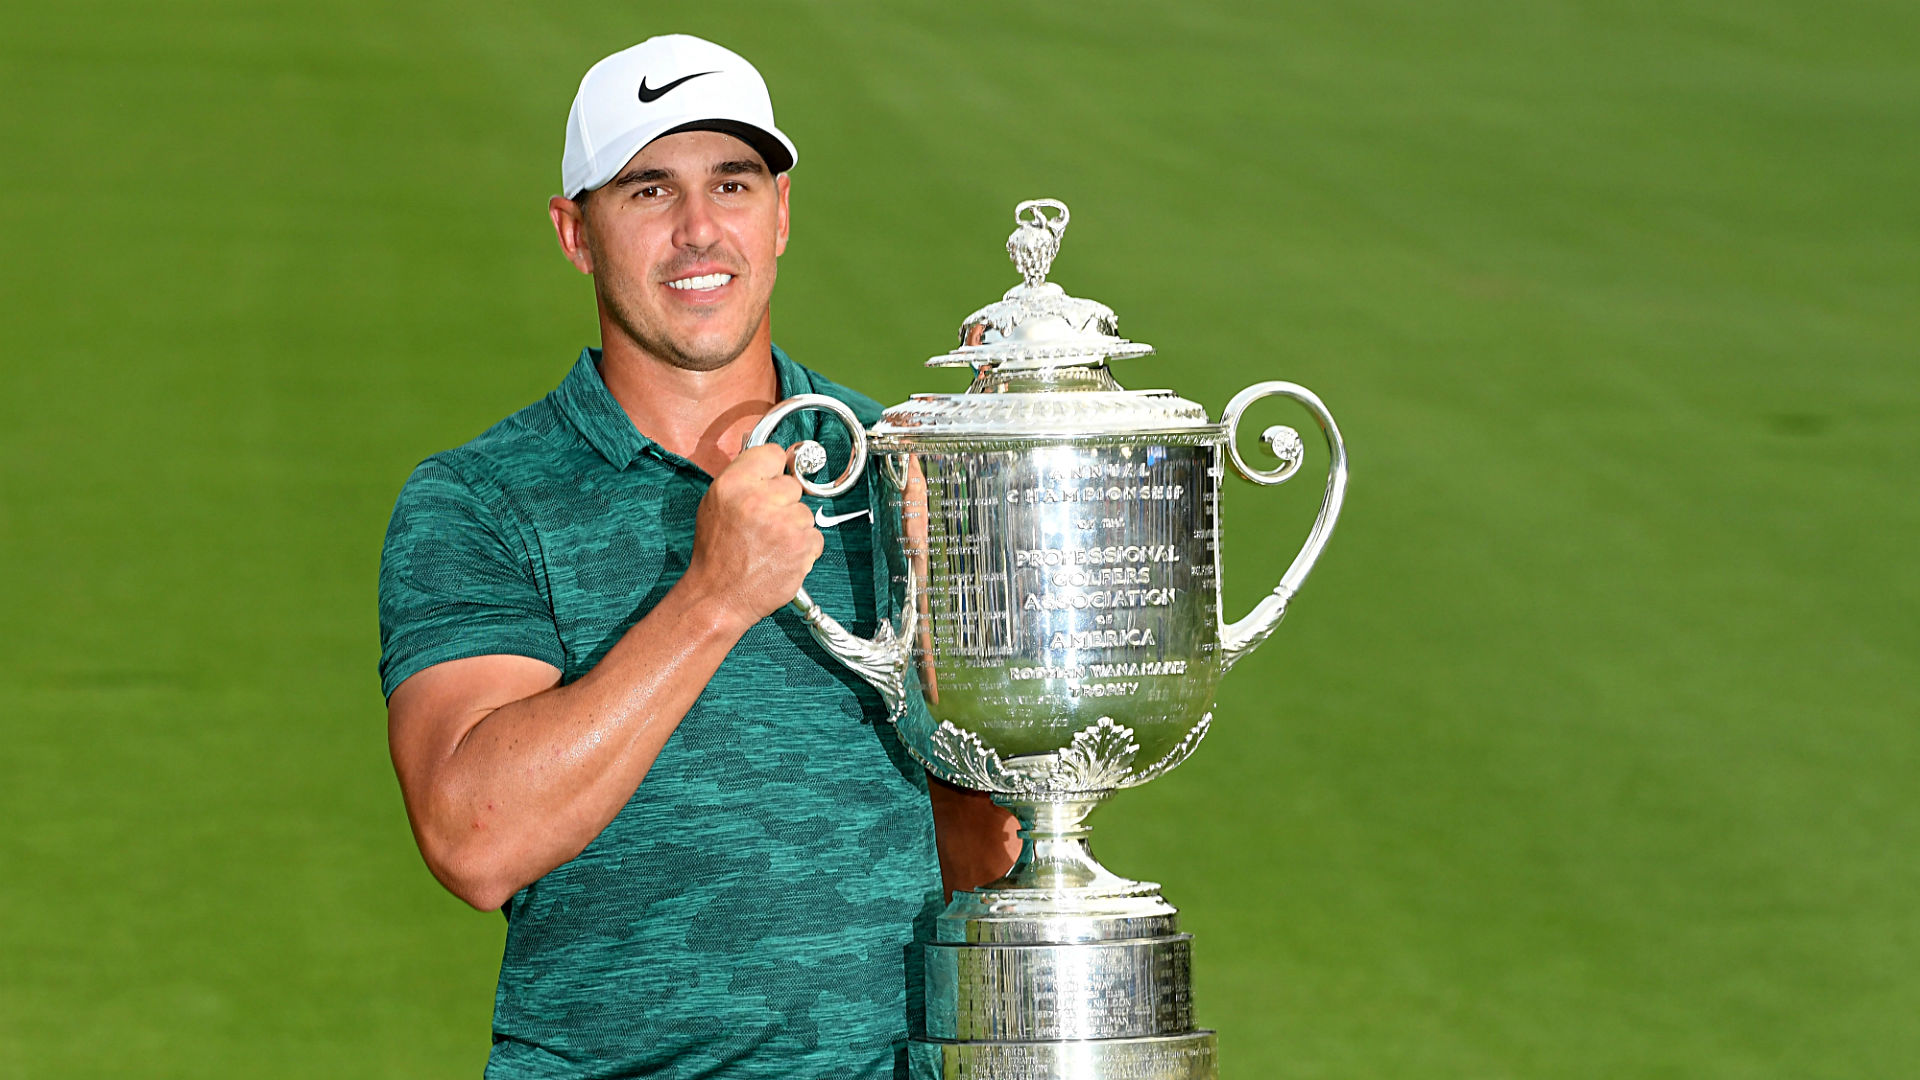 PGA Championship 2020 tee times, TV coverage, live stream & more to watch Thursday's Round 1 1